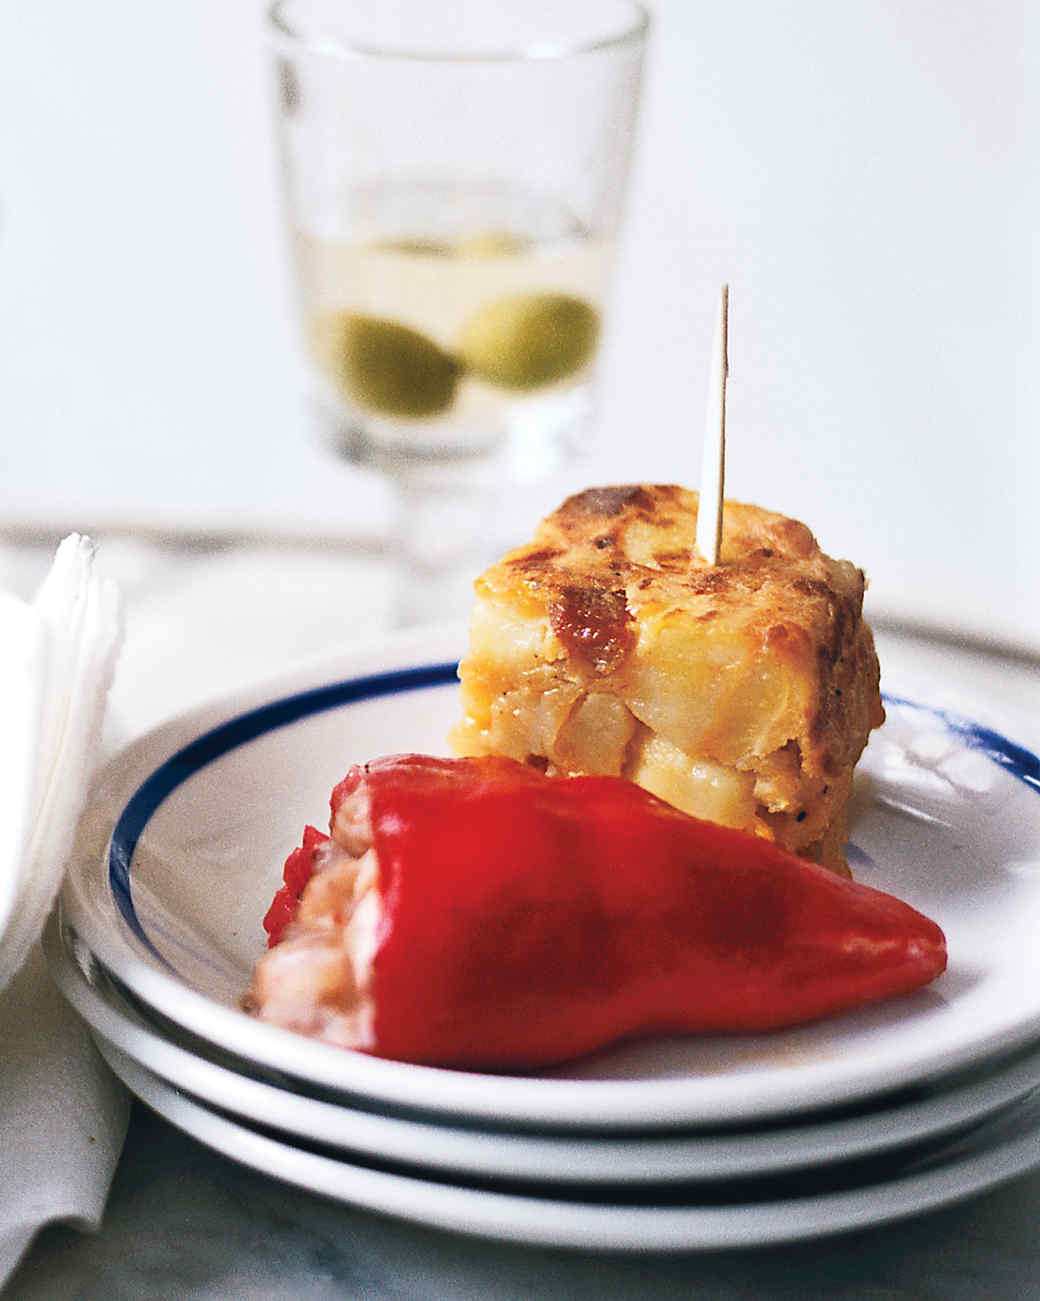 Piquillo Peppers Stuffed with Shrimp Salad